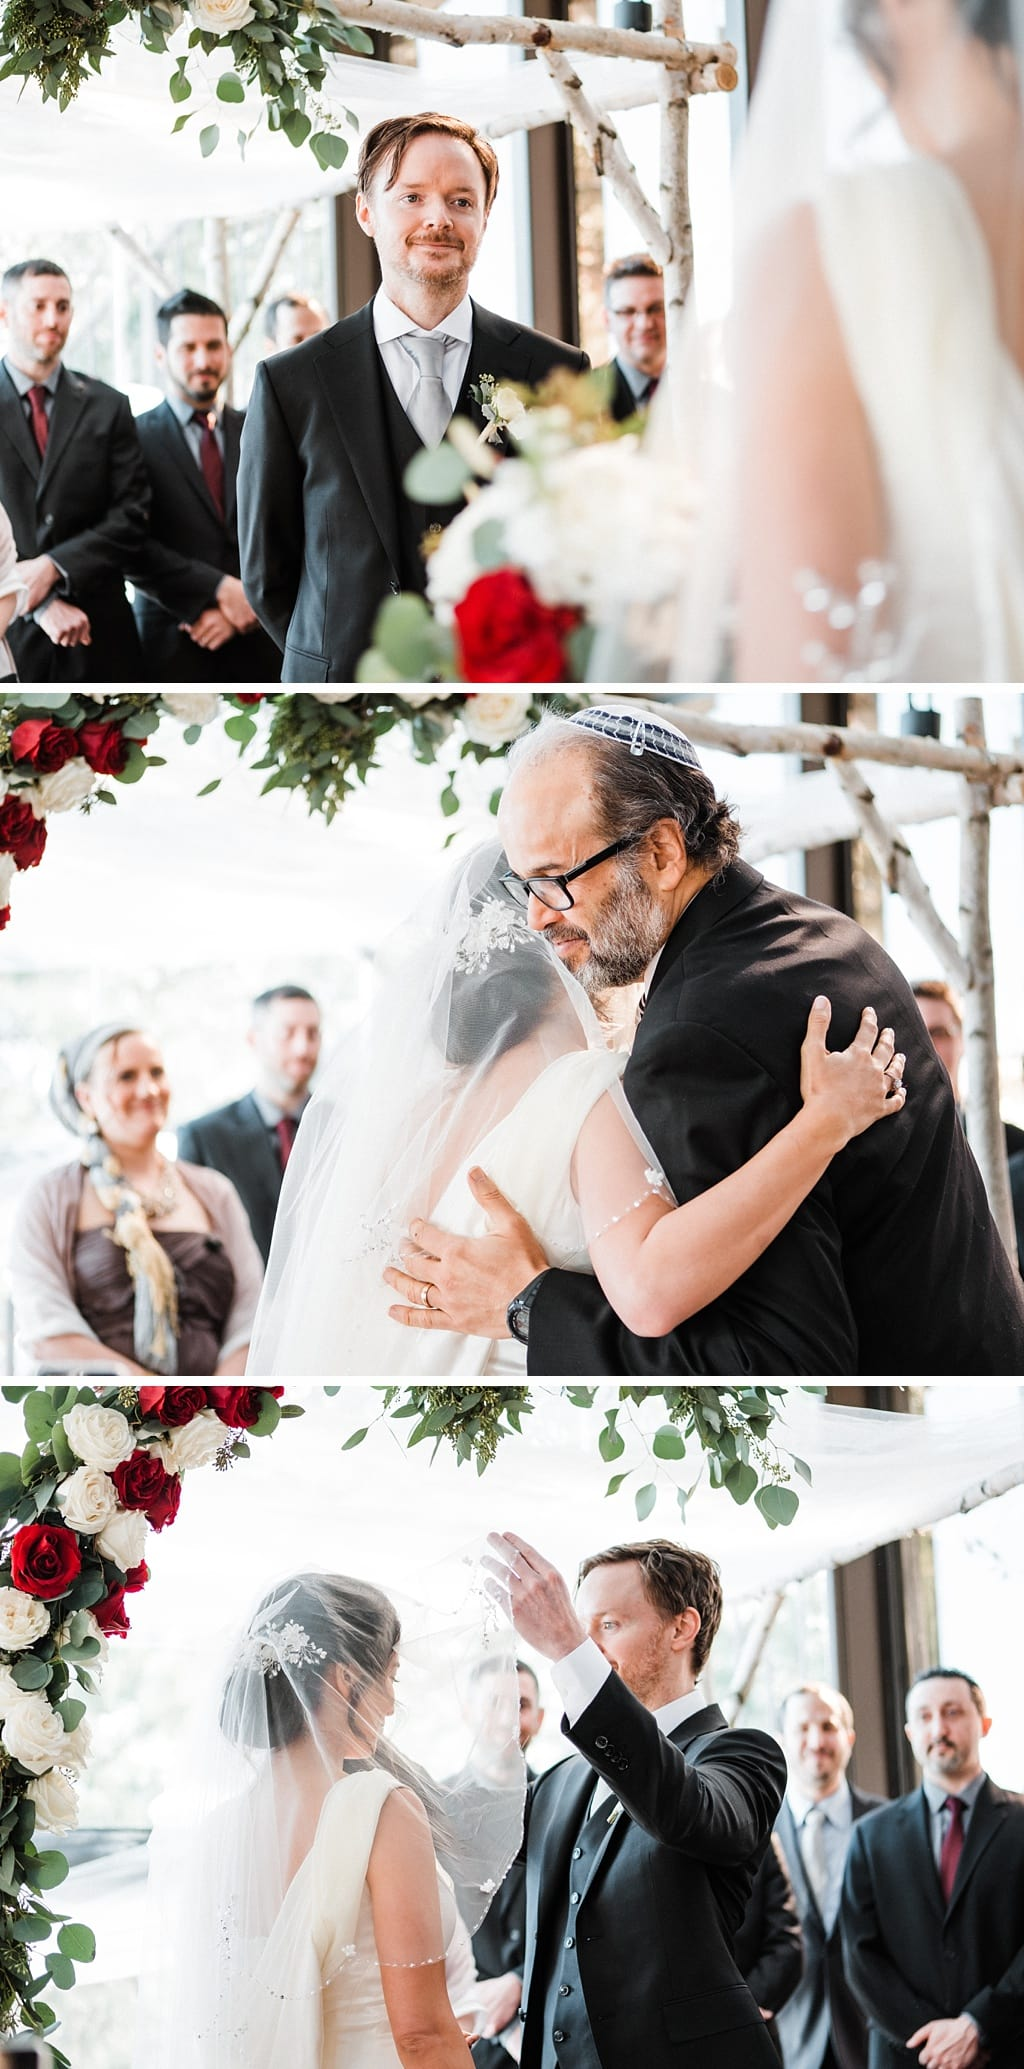 Groom waiting for bride under chuppah at Flagstaff House wedding in Boulder, Colorado, Jewish wedding ceremony